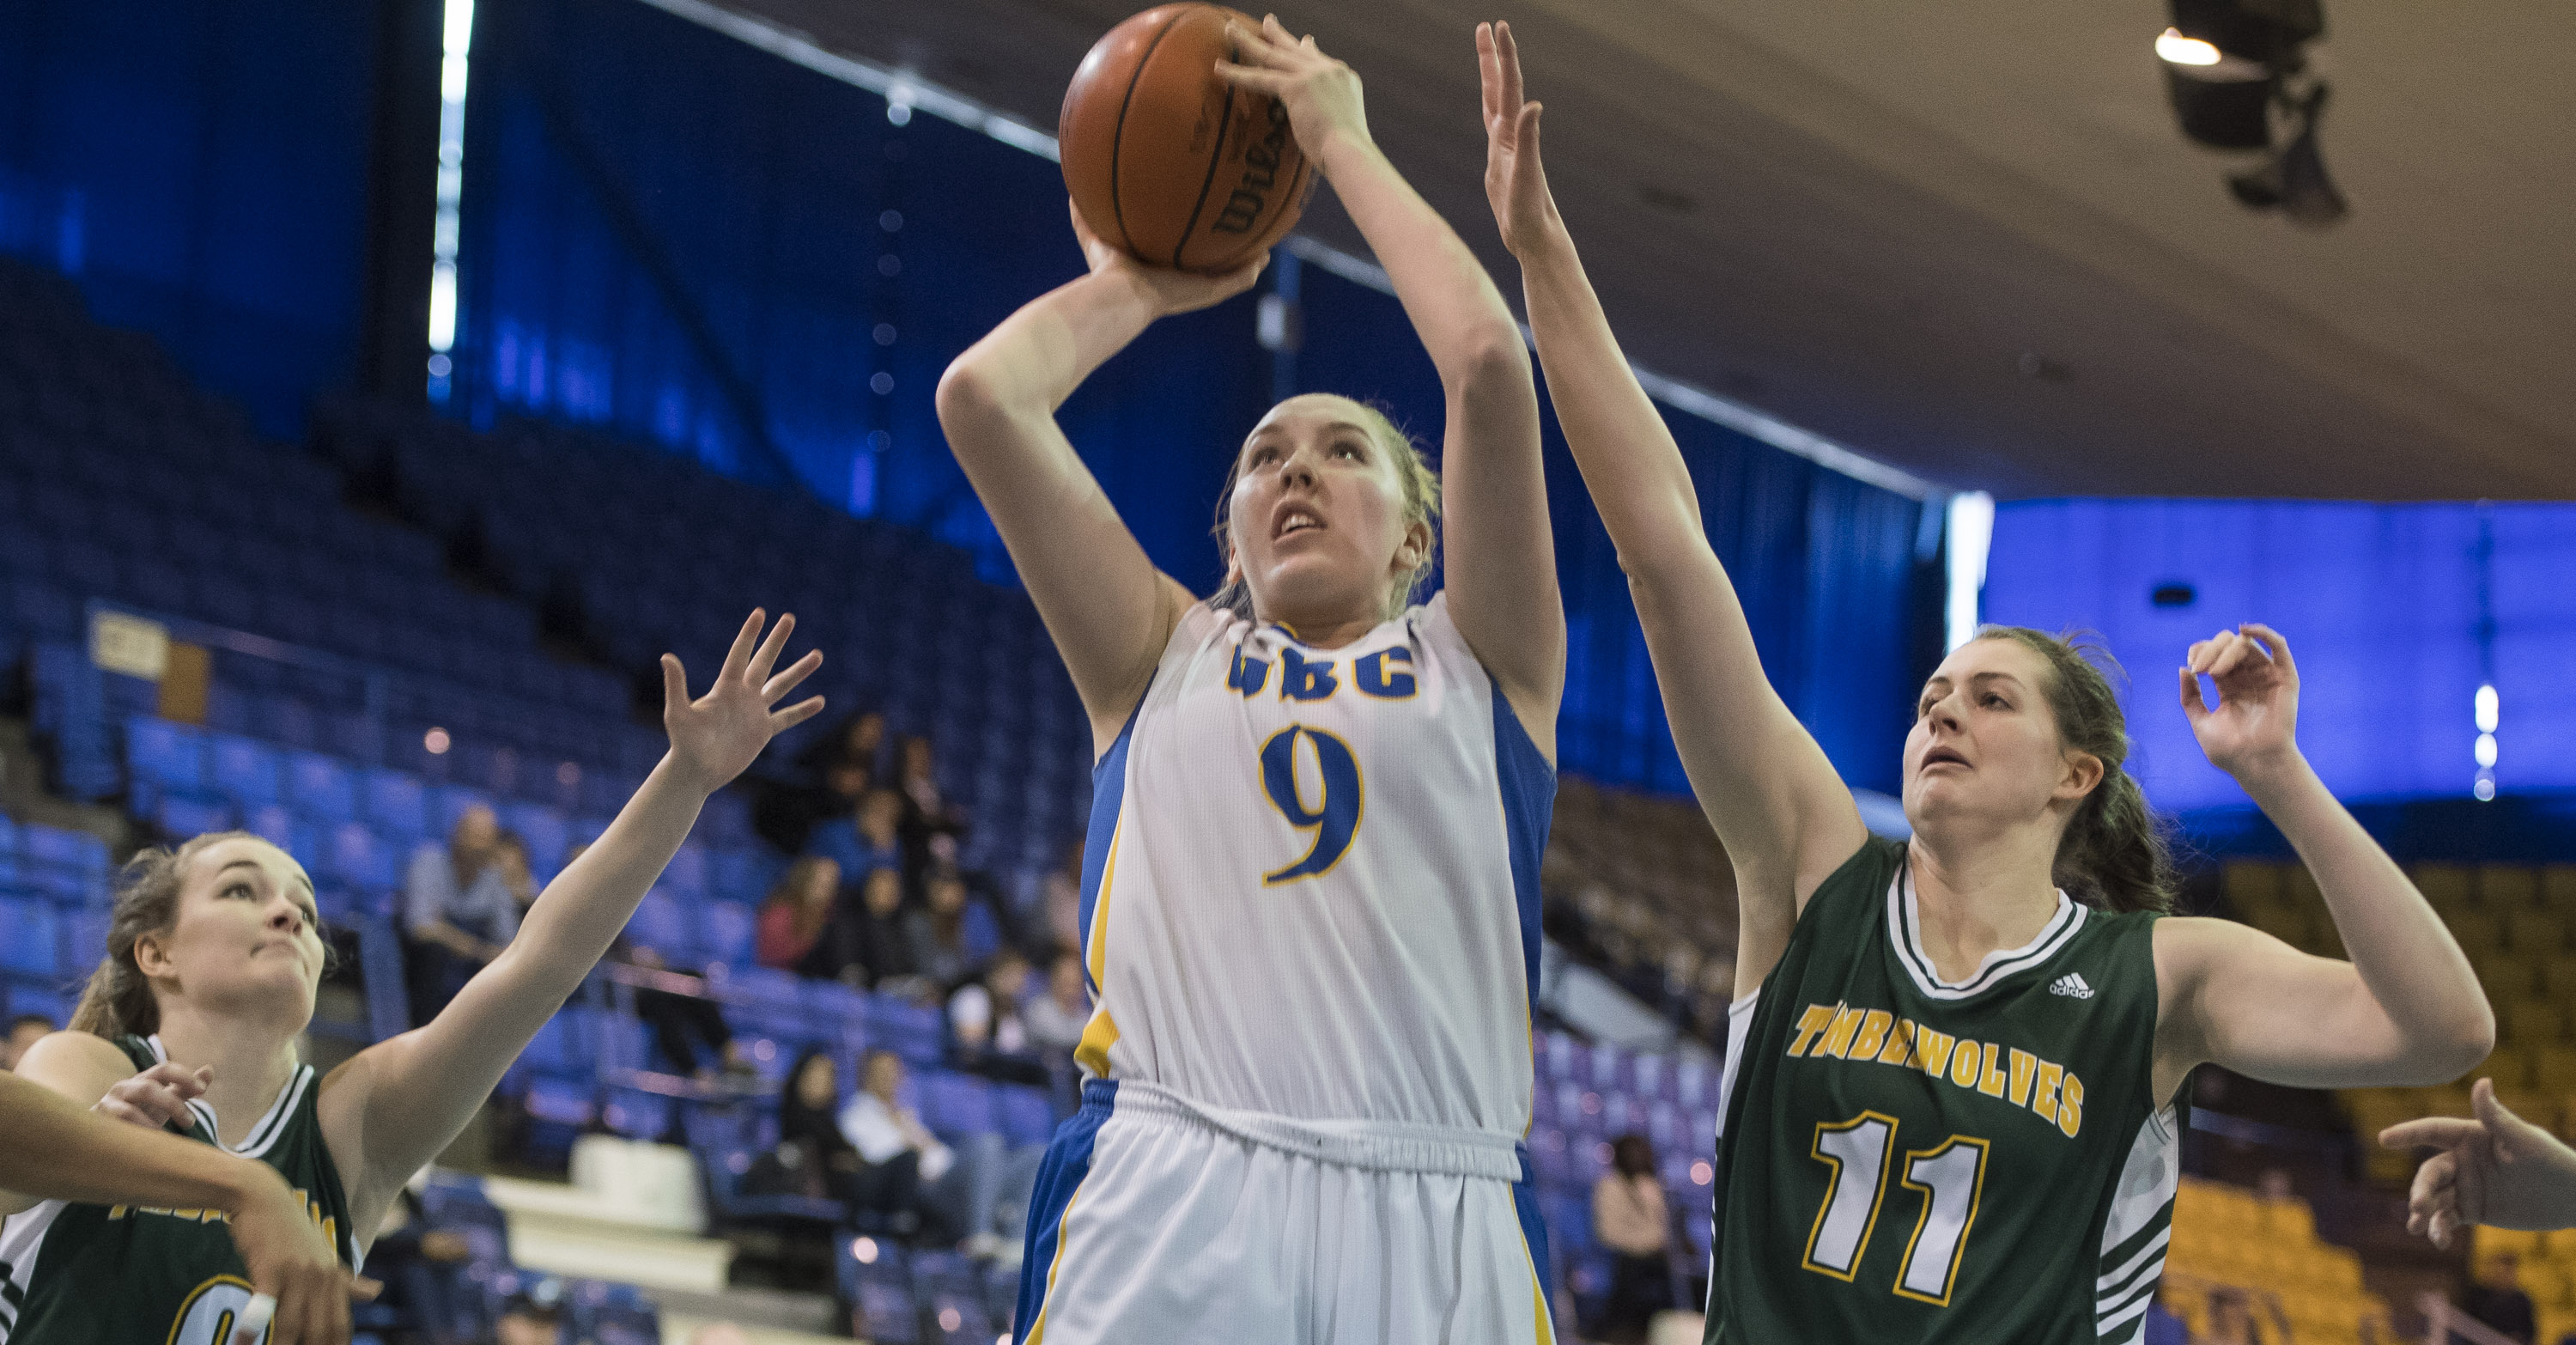 Filewich sets up for a shot against the UNBC Timberwolves.